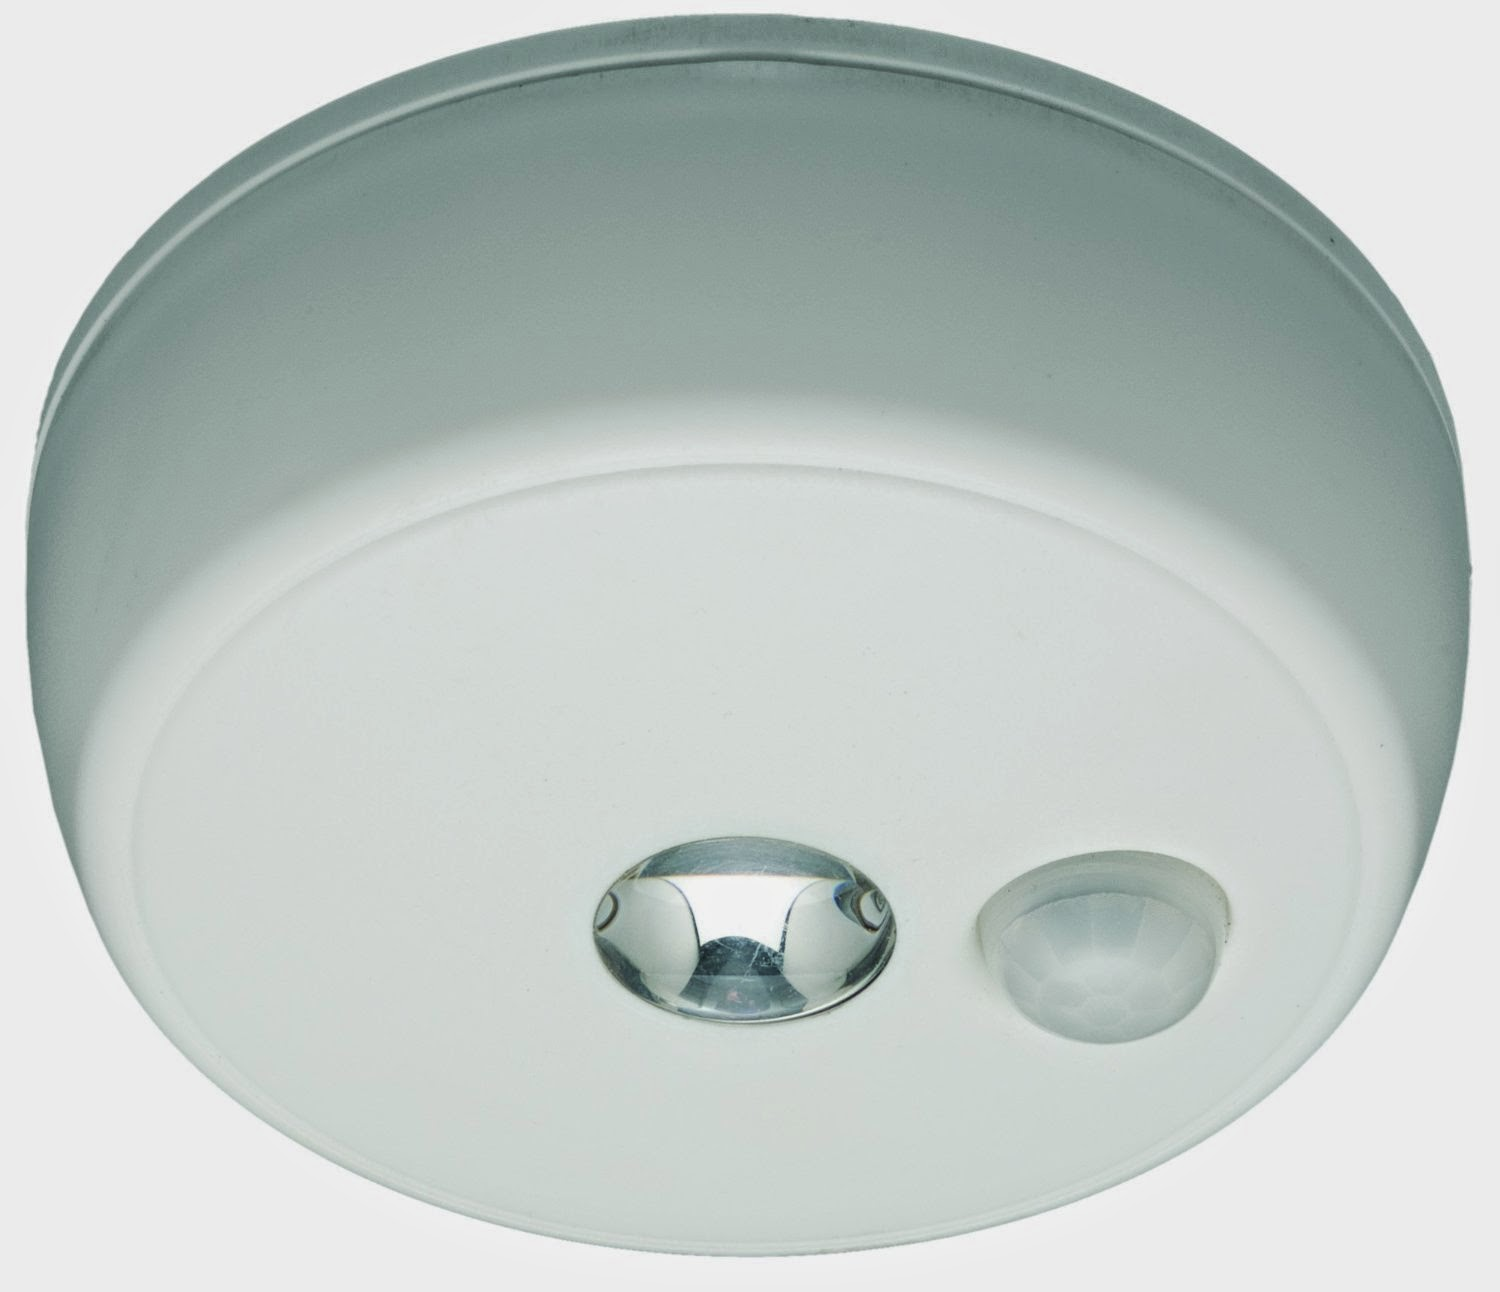 Led Light Fixture Cover: Covers Ceiling Light Fixture